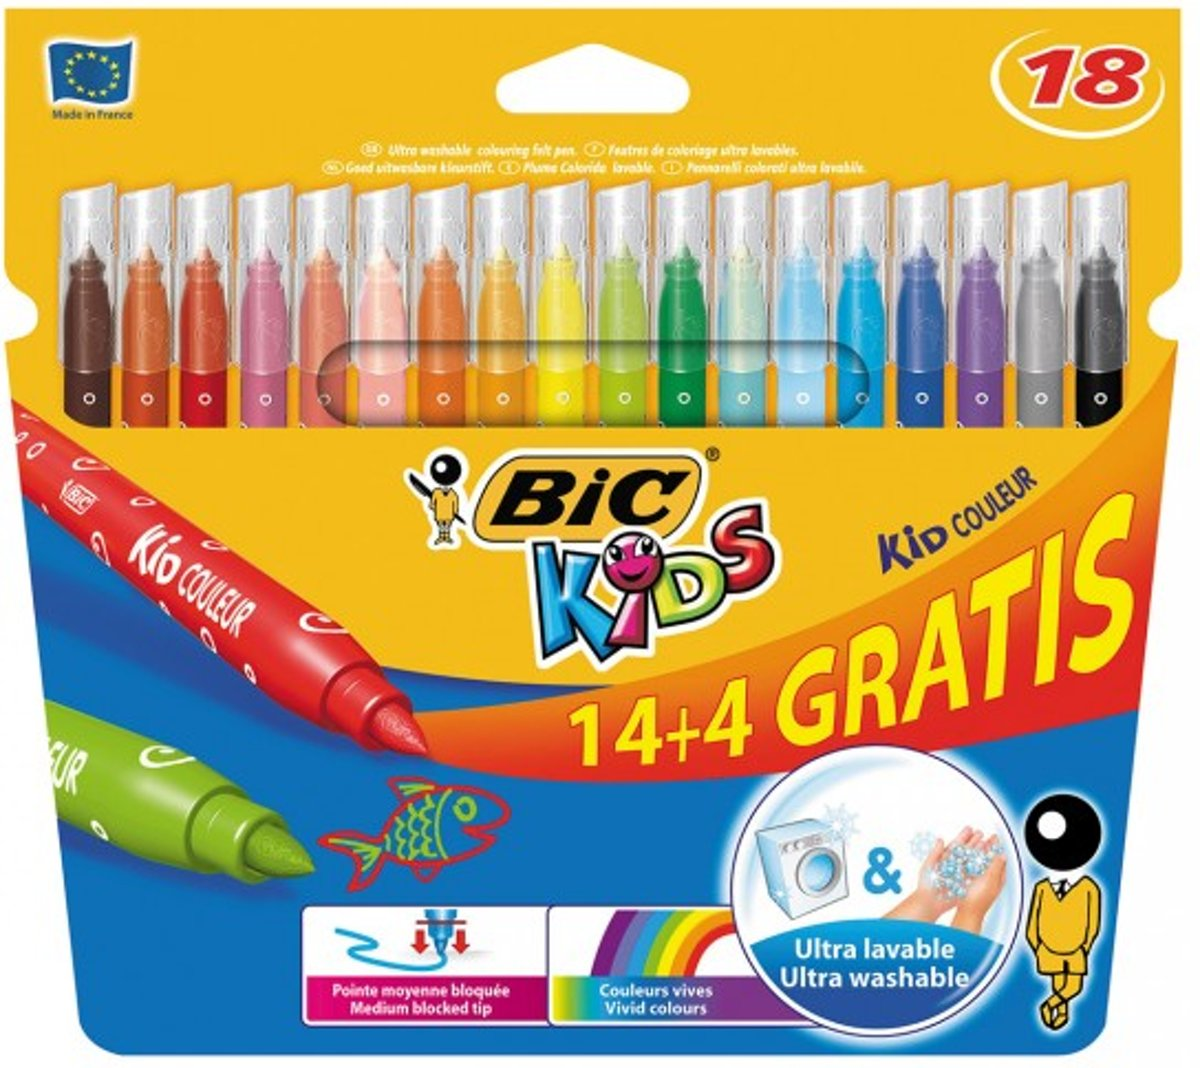 Kids Kid Couleur, 14 + 4st. gratis